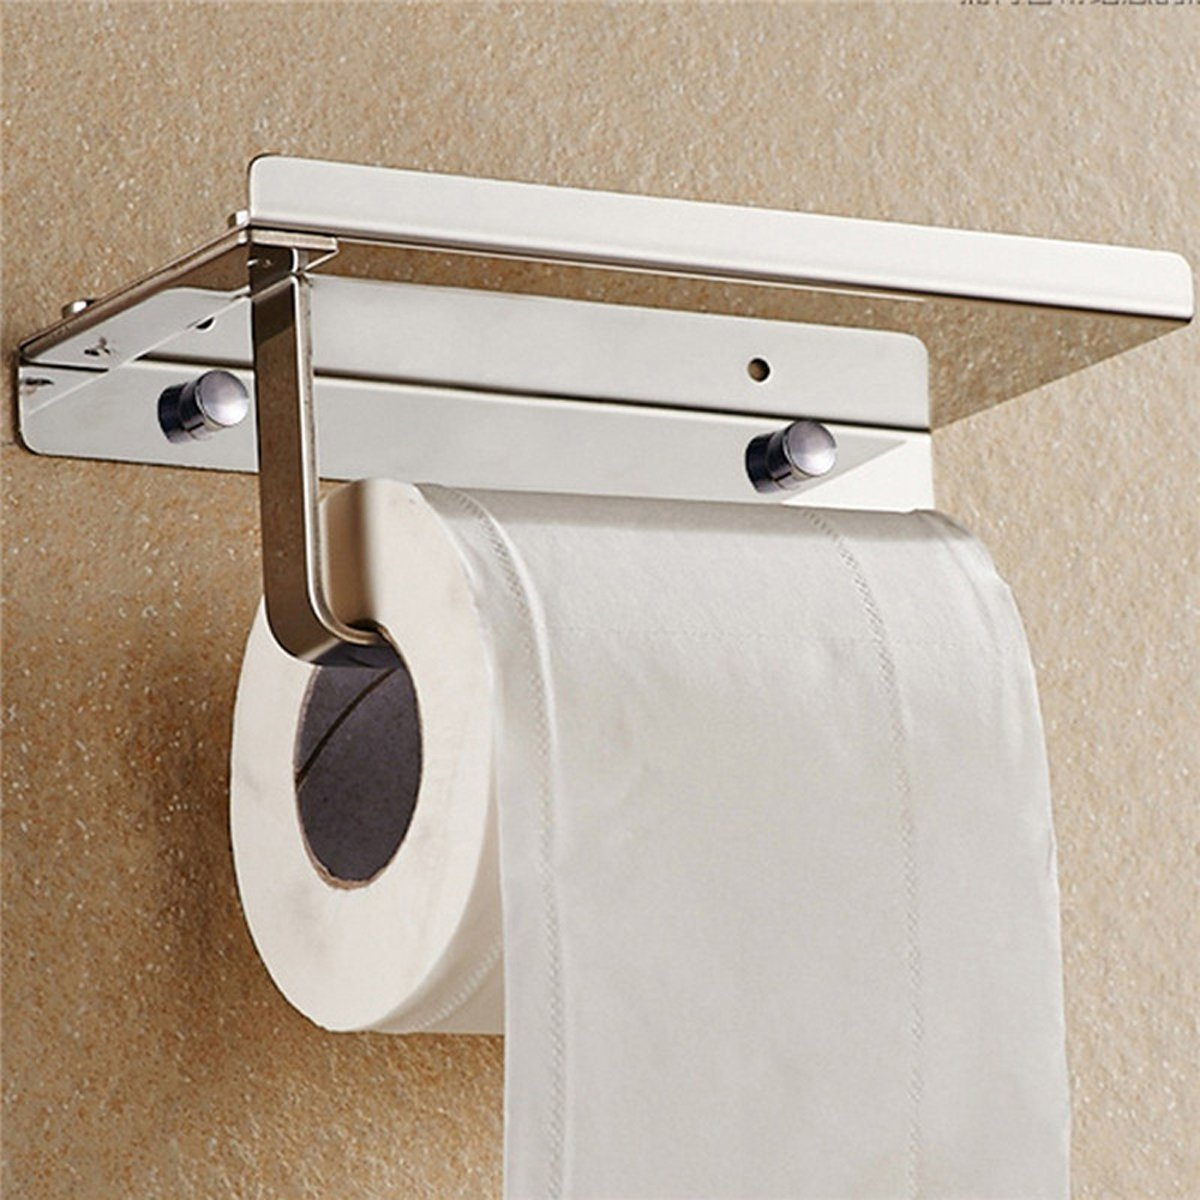 Wall Mount Toilet Paper Holder by CharaVector, Stainless Steel Bathroom Lavatory Toilet Paper Holder with Storage Shelf, Brushed Aluminum